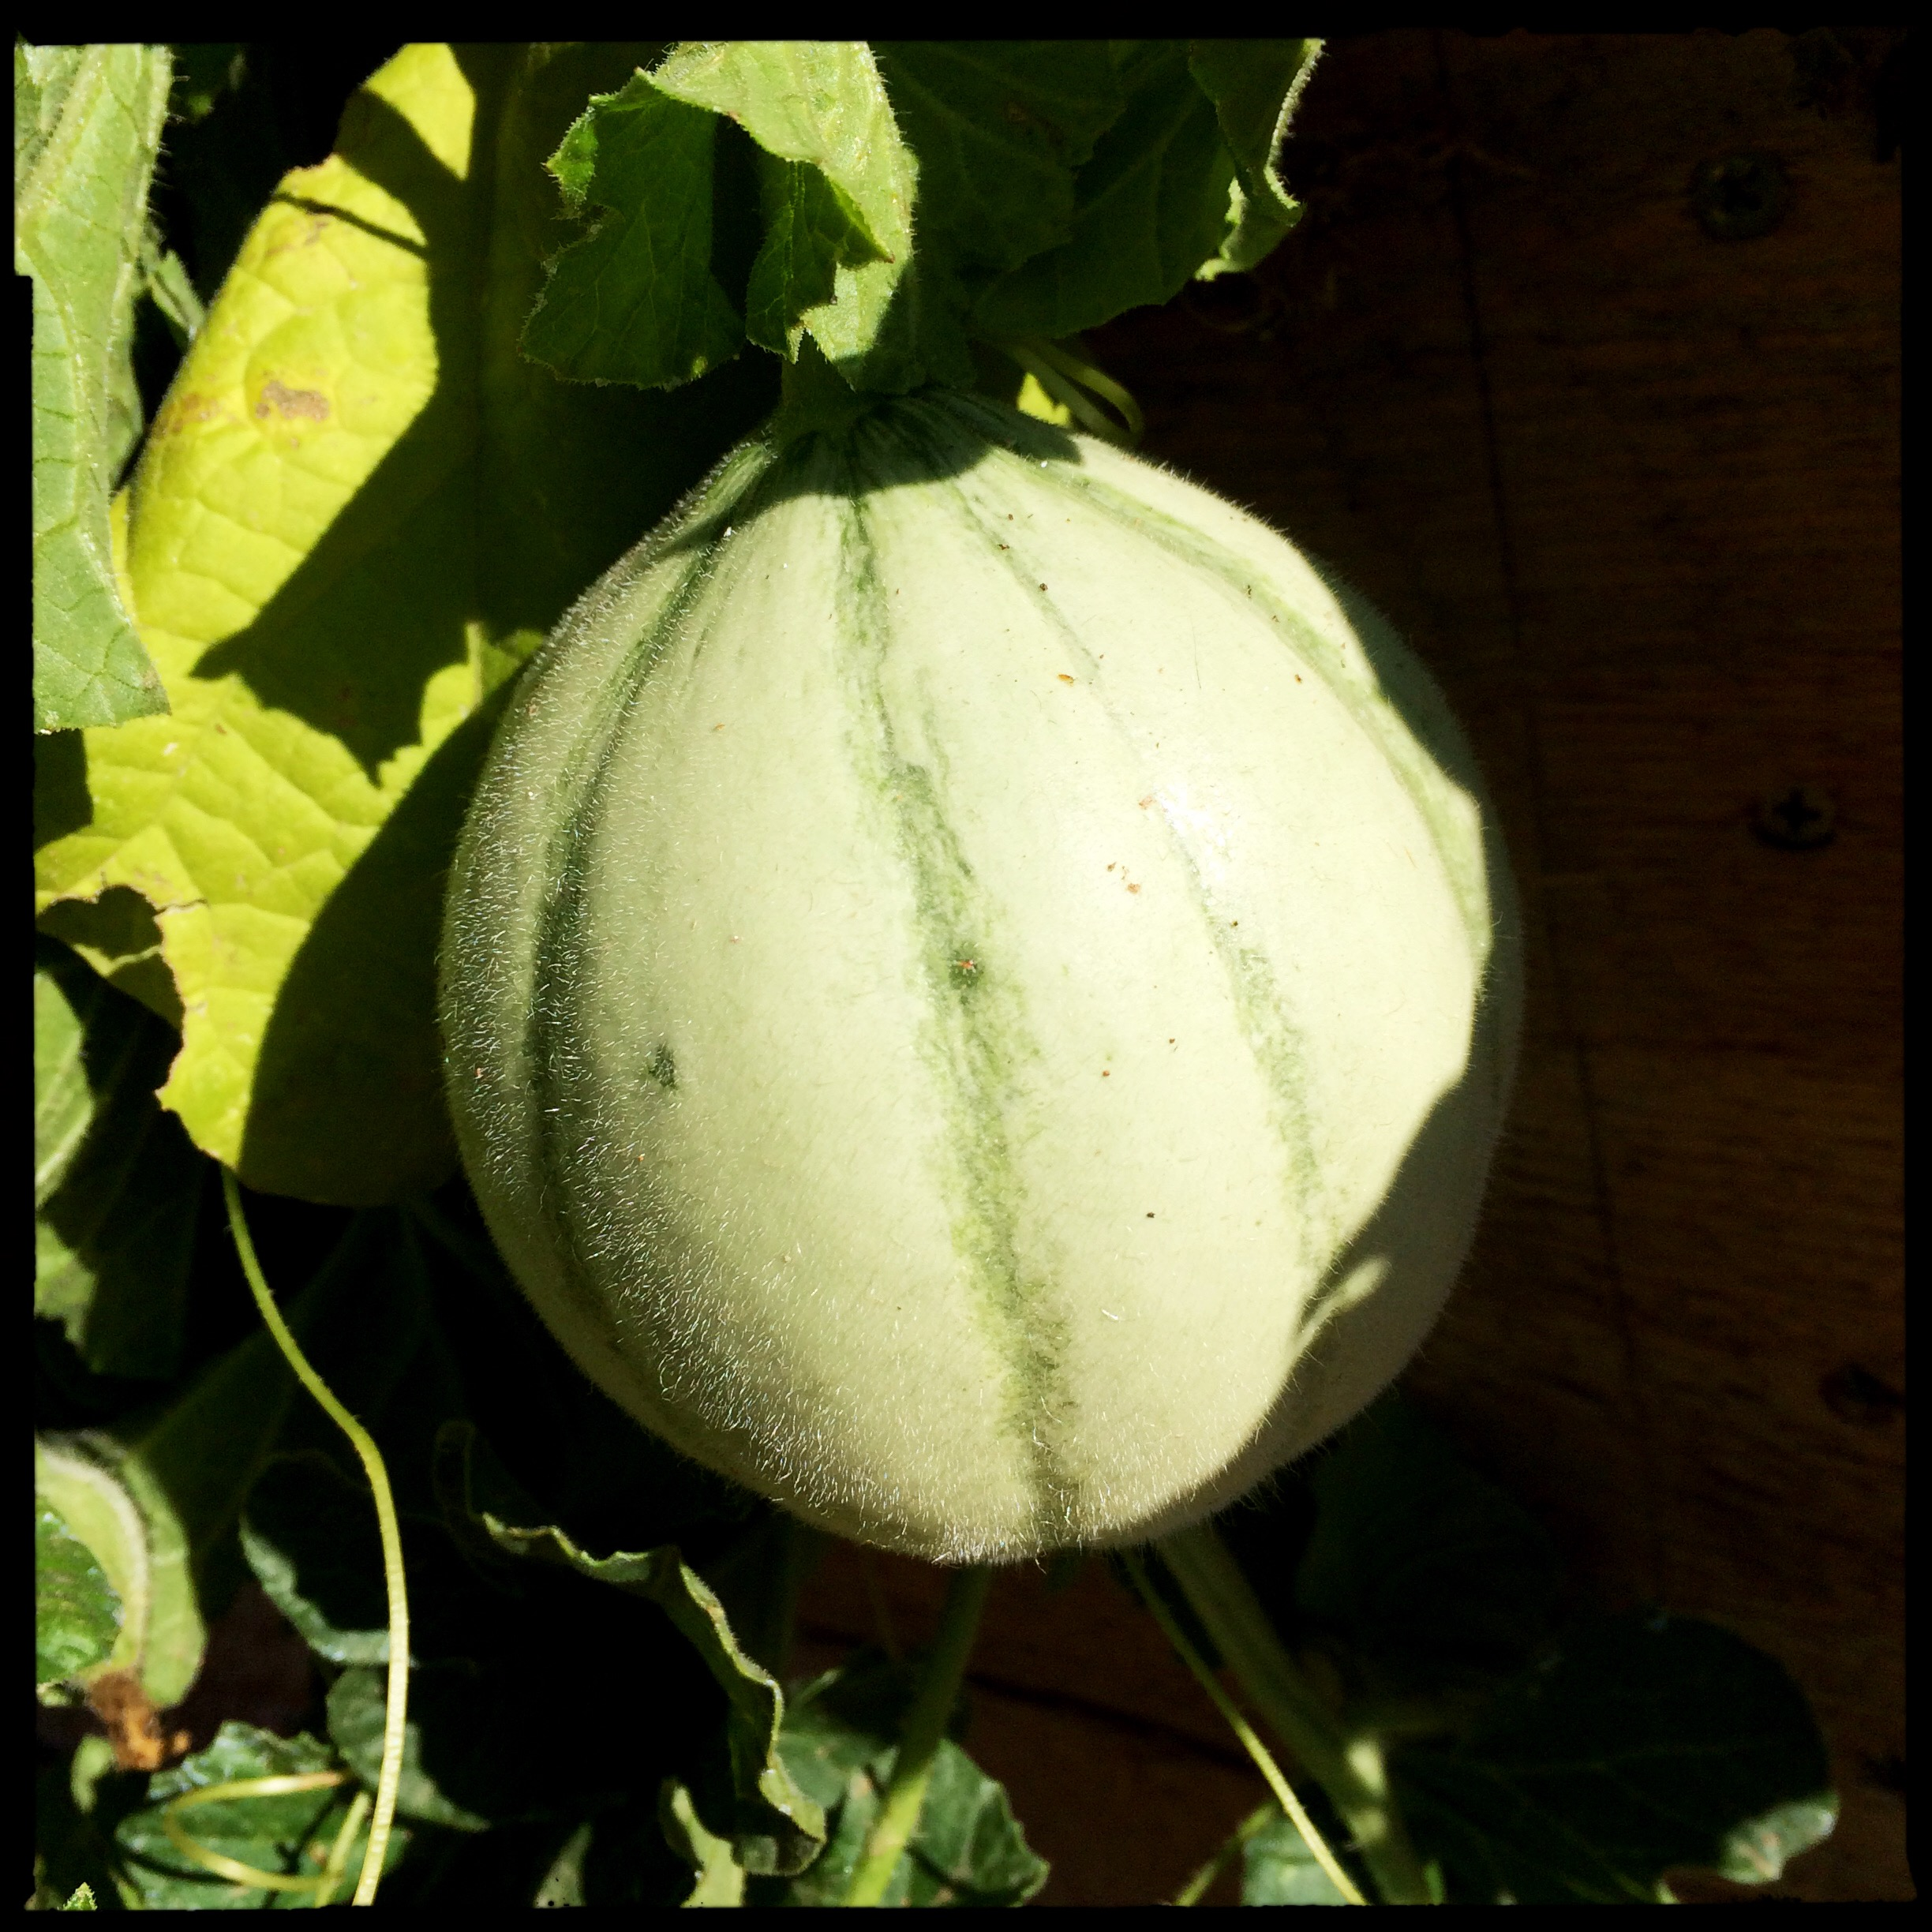 ... and an undiscovered Alvaro melon off the edge of the raised bed. Fingers crossed these get to ripen before the rodents get them.